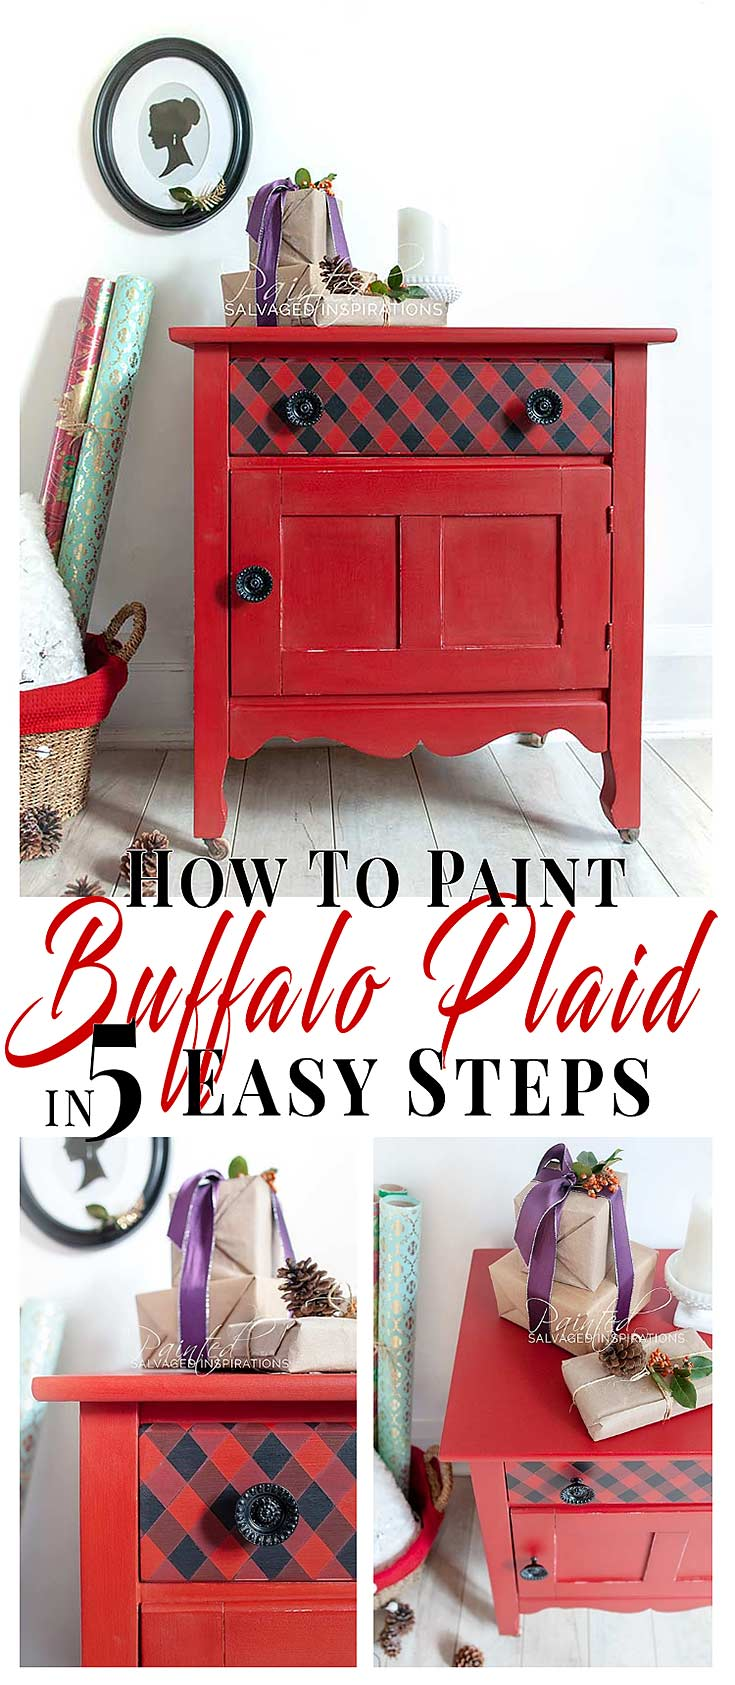 How To Paint Buffalo Plaid in 5 Easy Steps